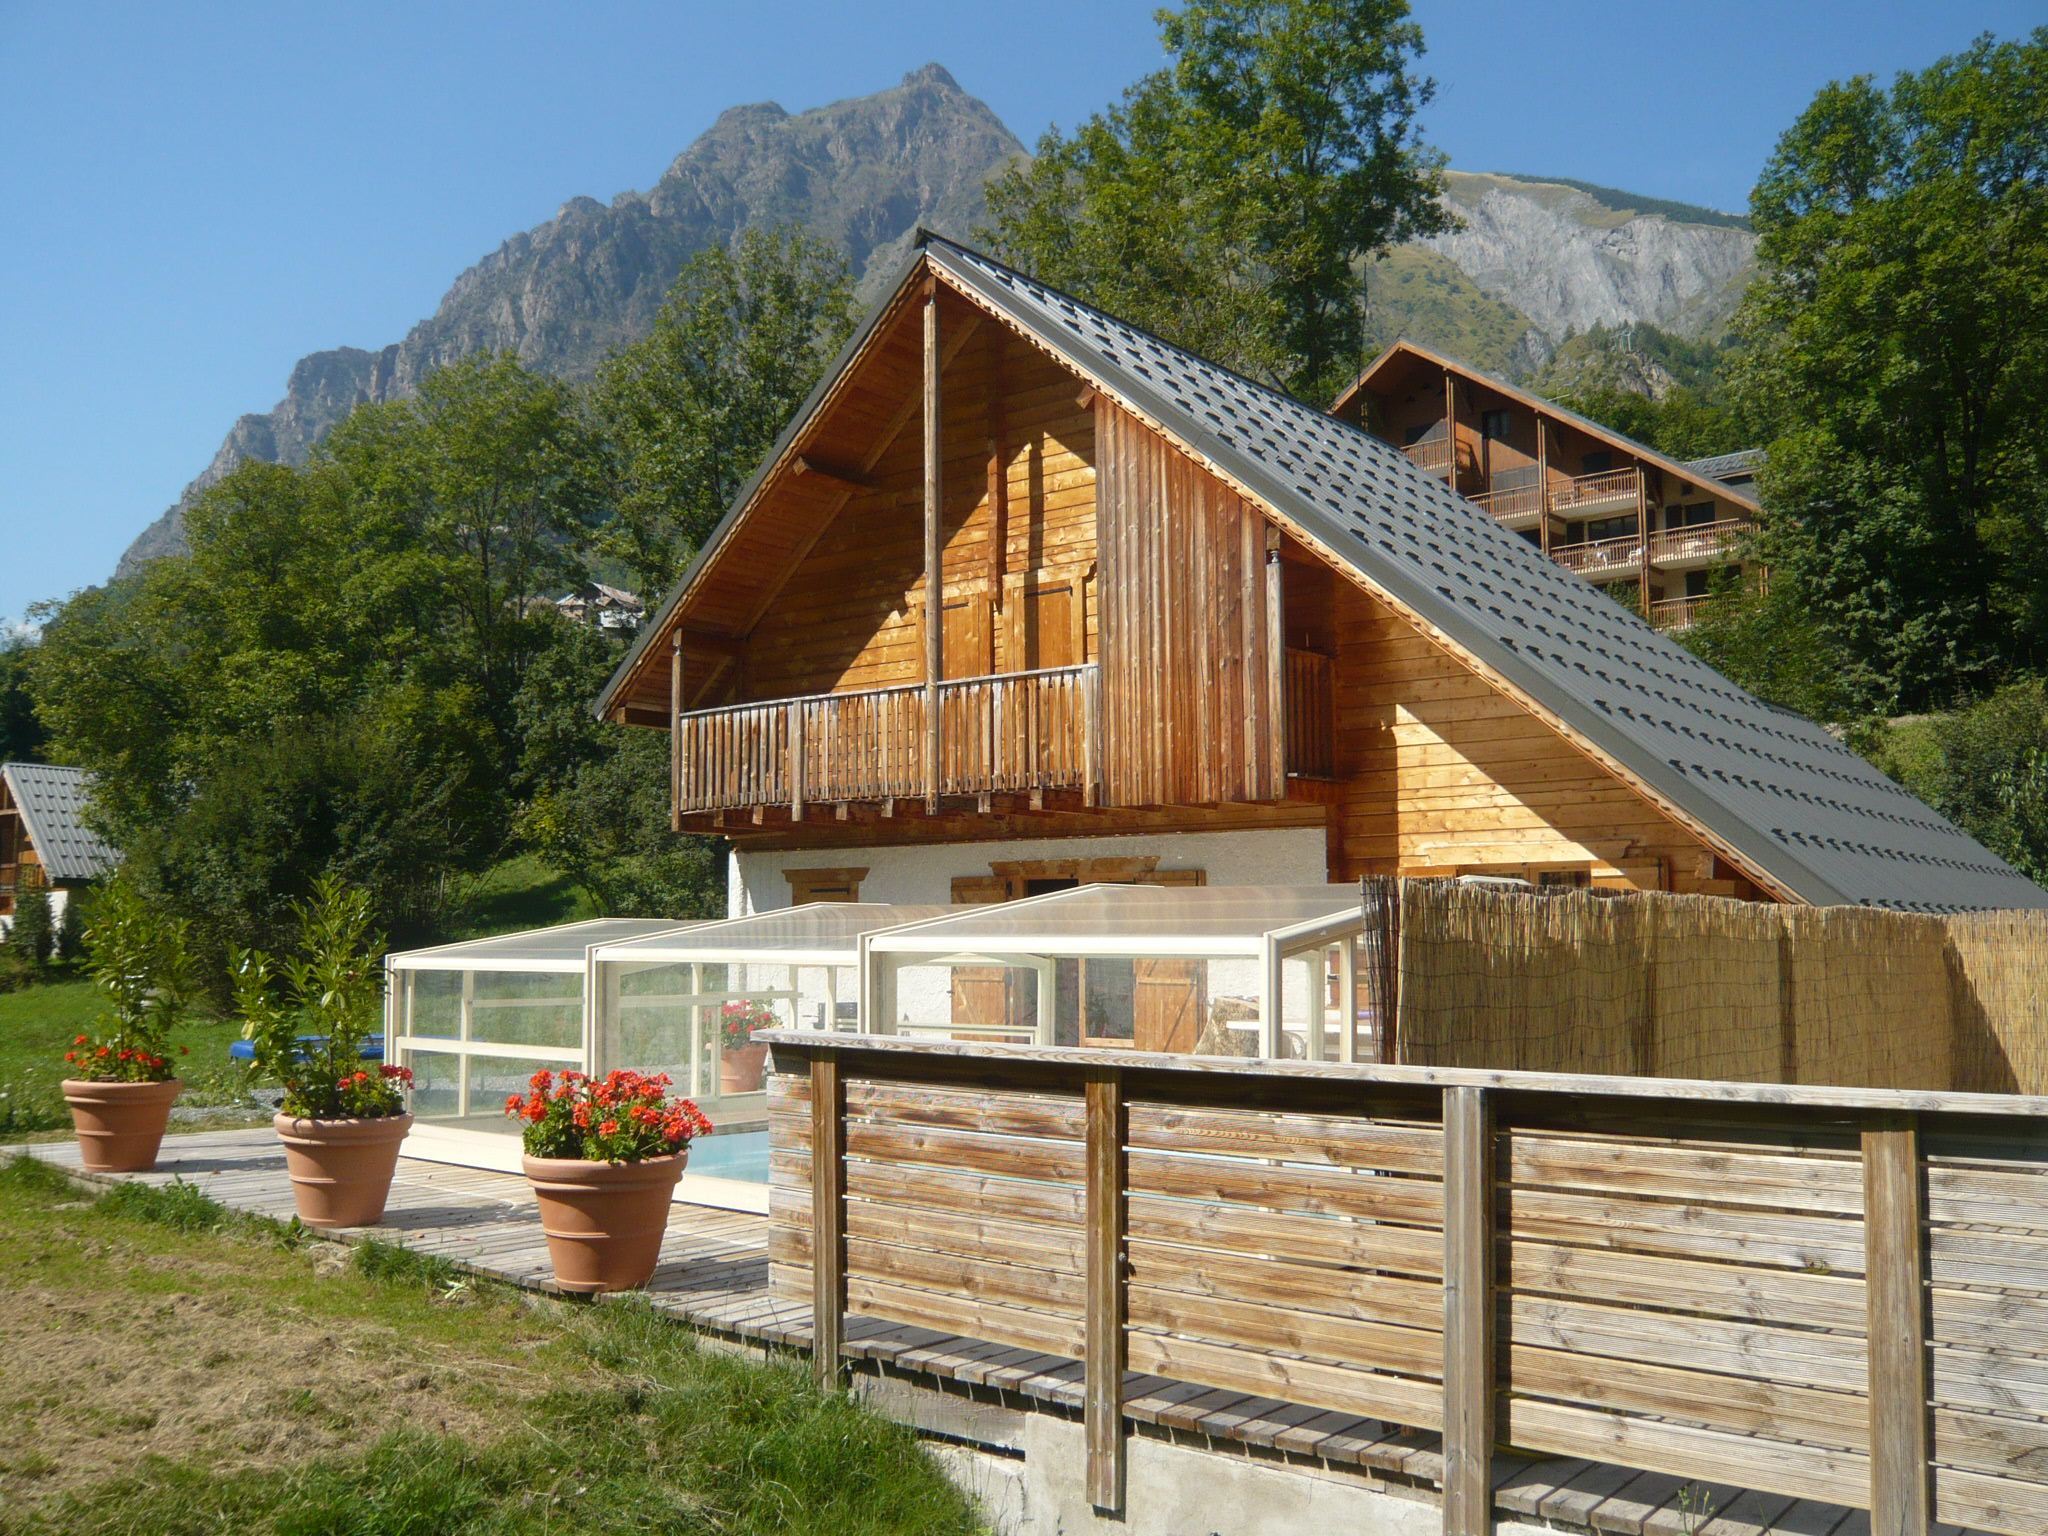 Le Planet I & II, Venosc (self catered chalets) - Beautiful location